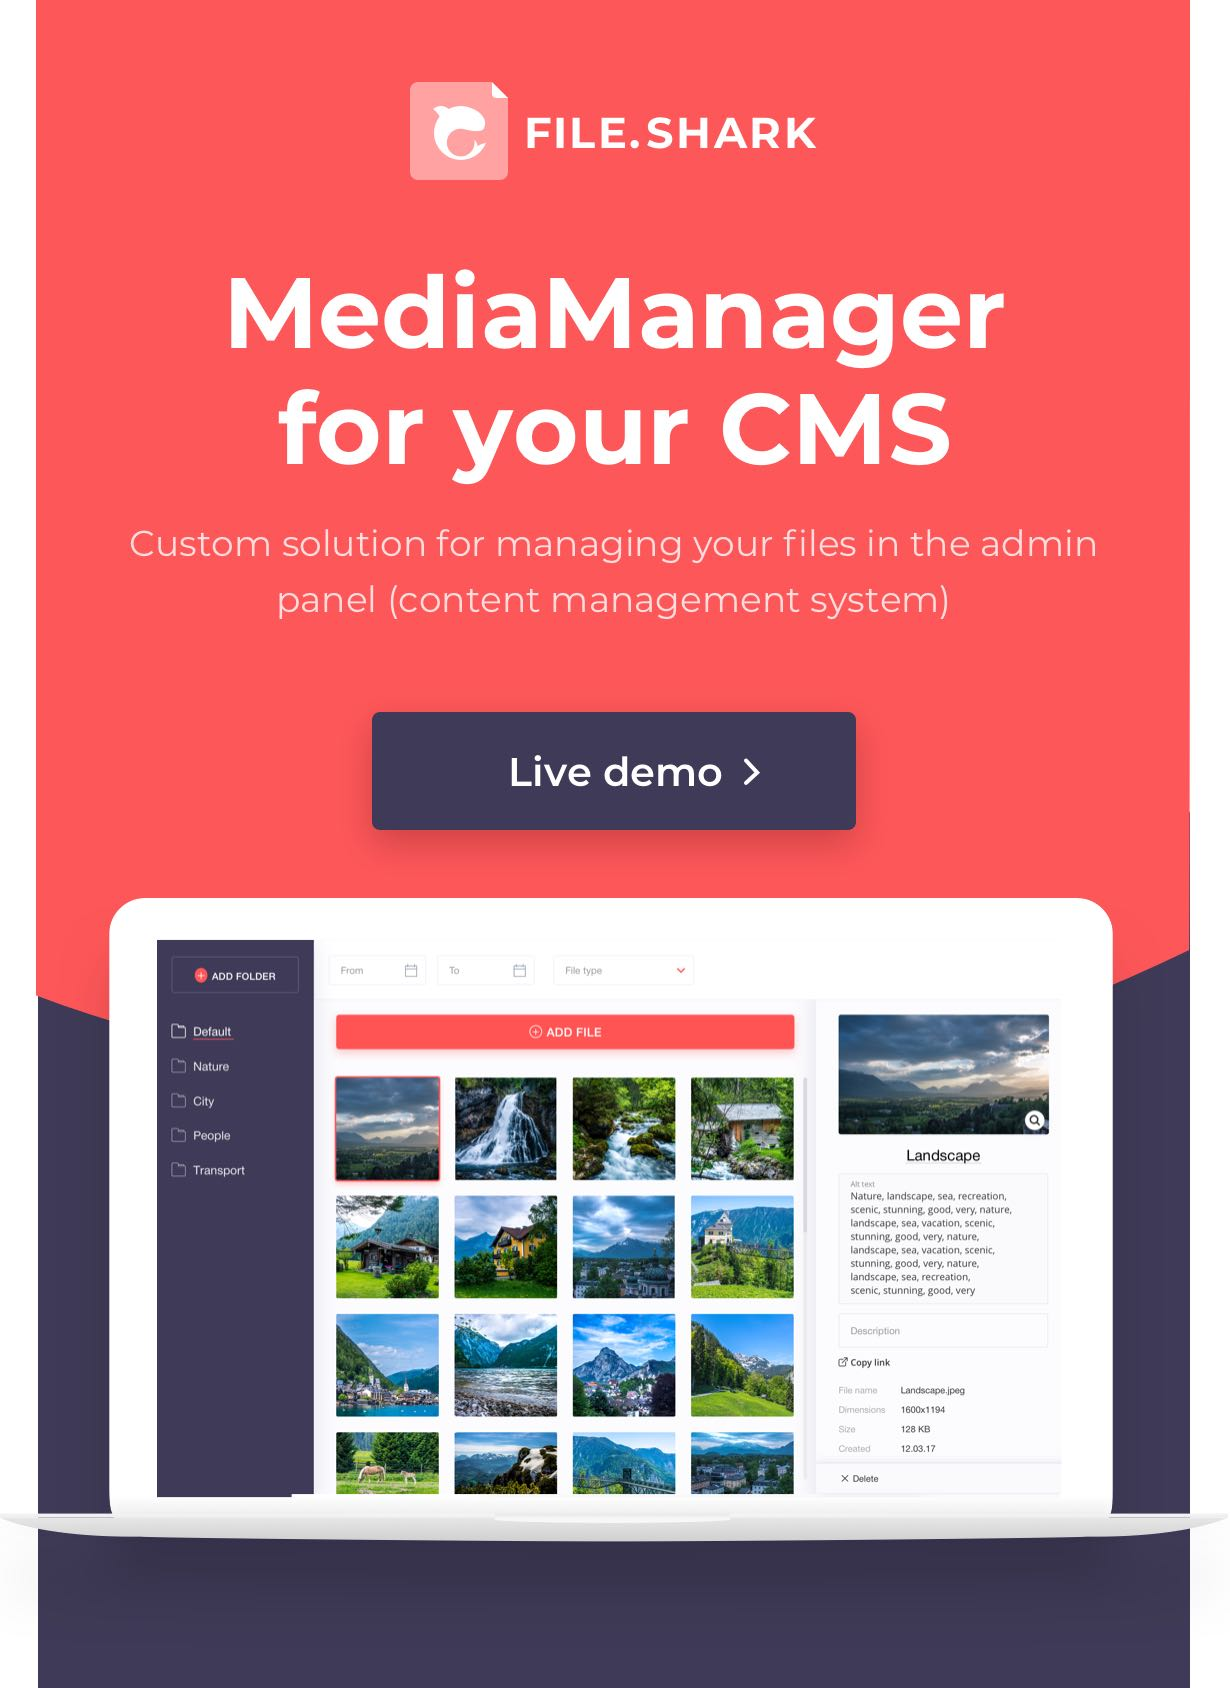 Media manager for your CMS - Custom interface solution for file management in your content management system.